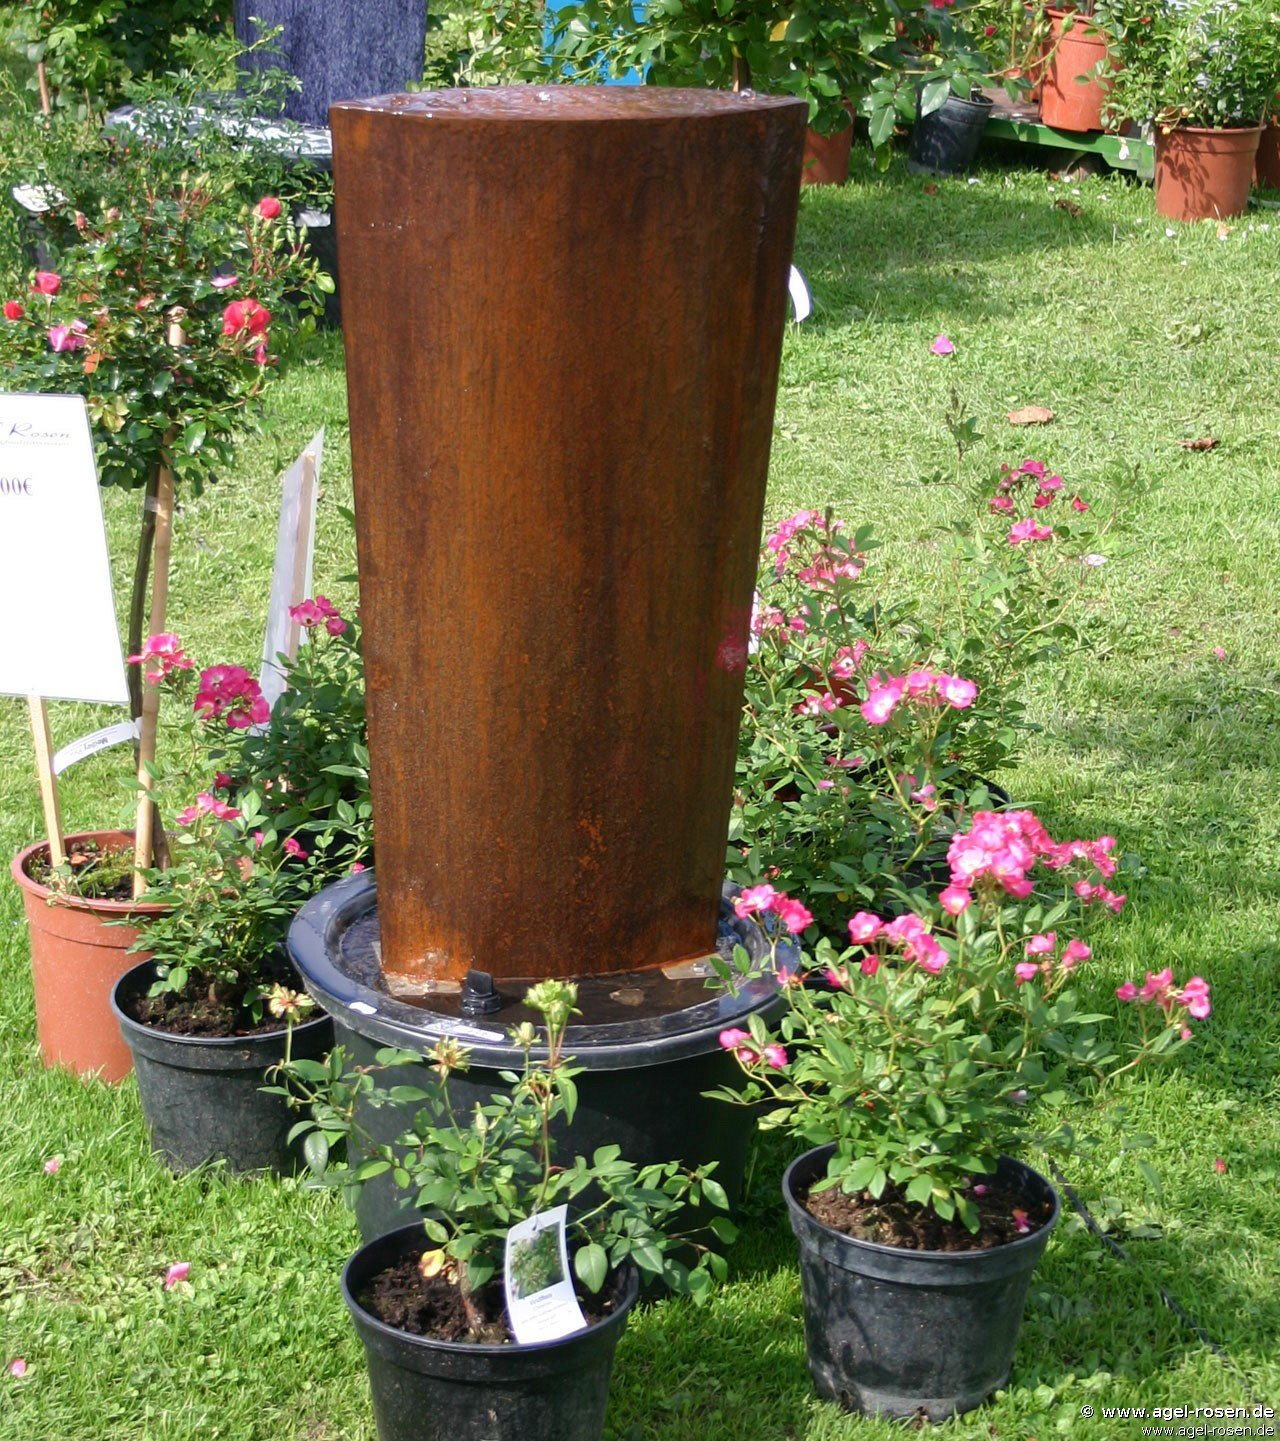 Buy brunnen corten stahl trapez hoch online at agel rosen for Garden accessories online